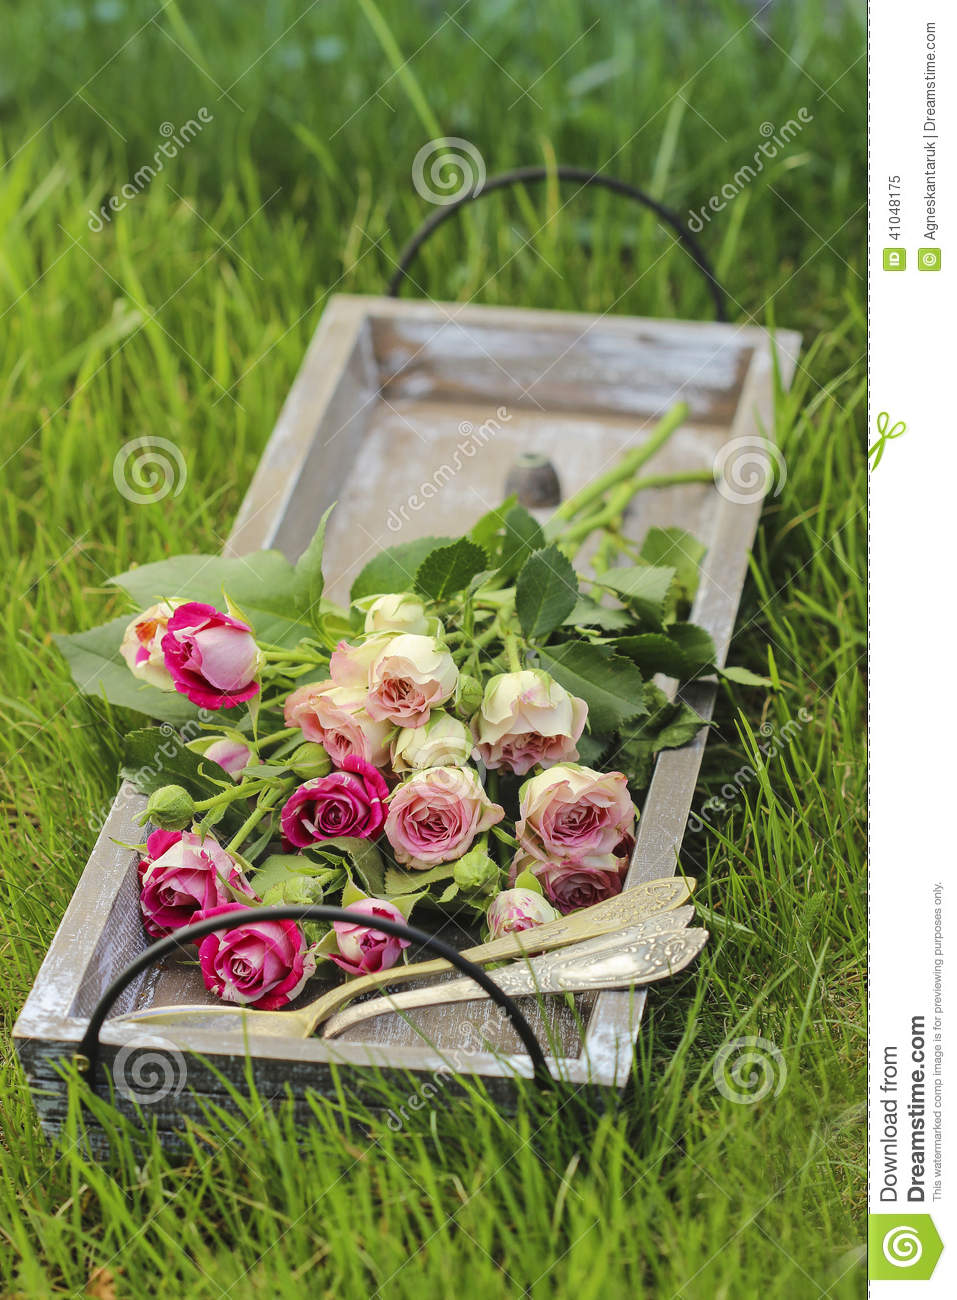 Garden Party Decor. Bouquet Of Pink Roses Stock Image - Image of ...